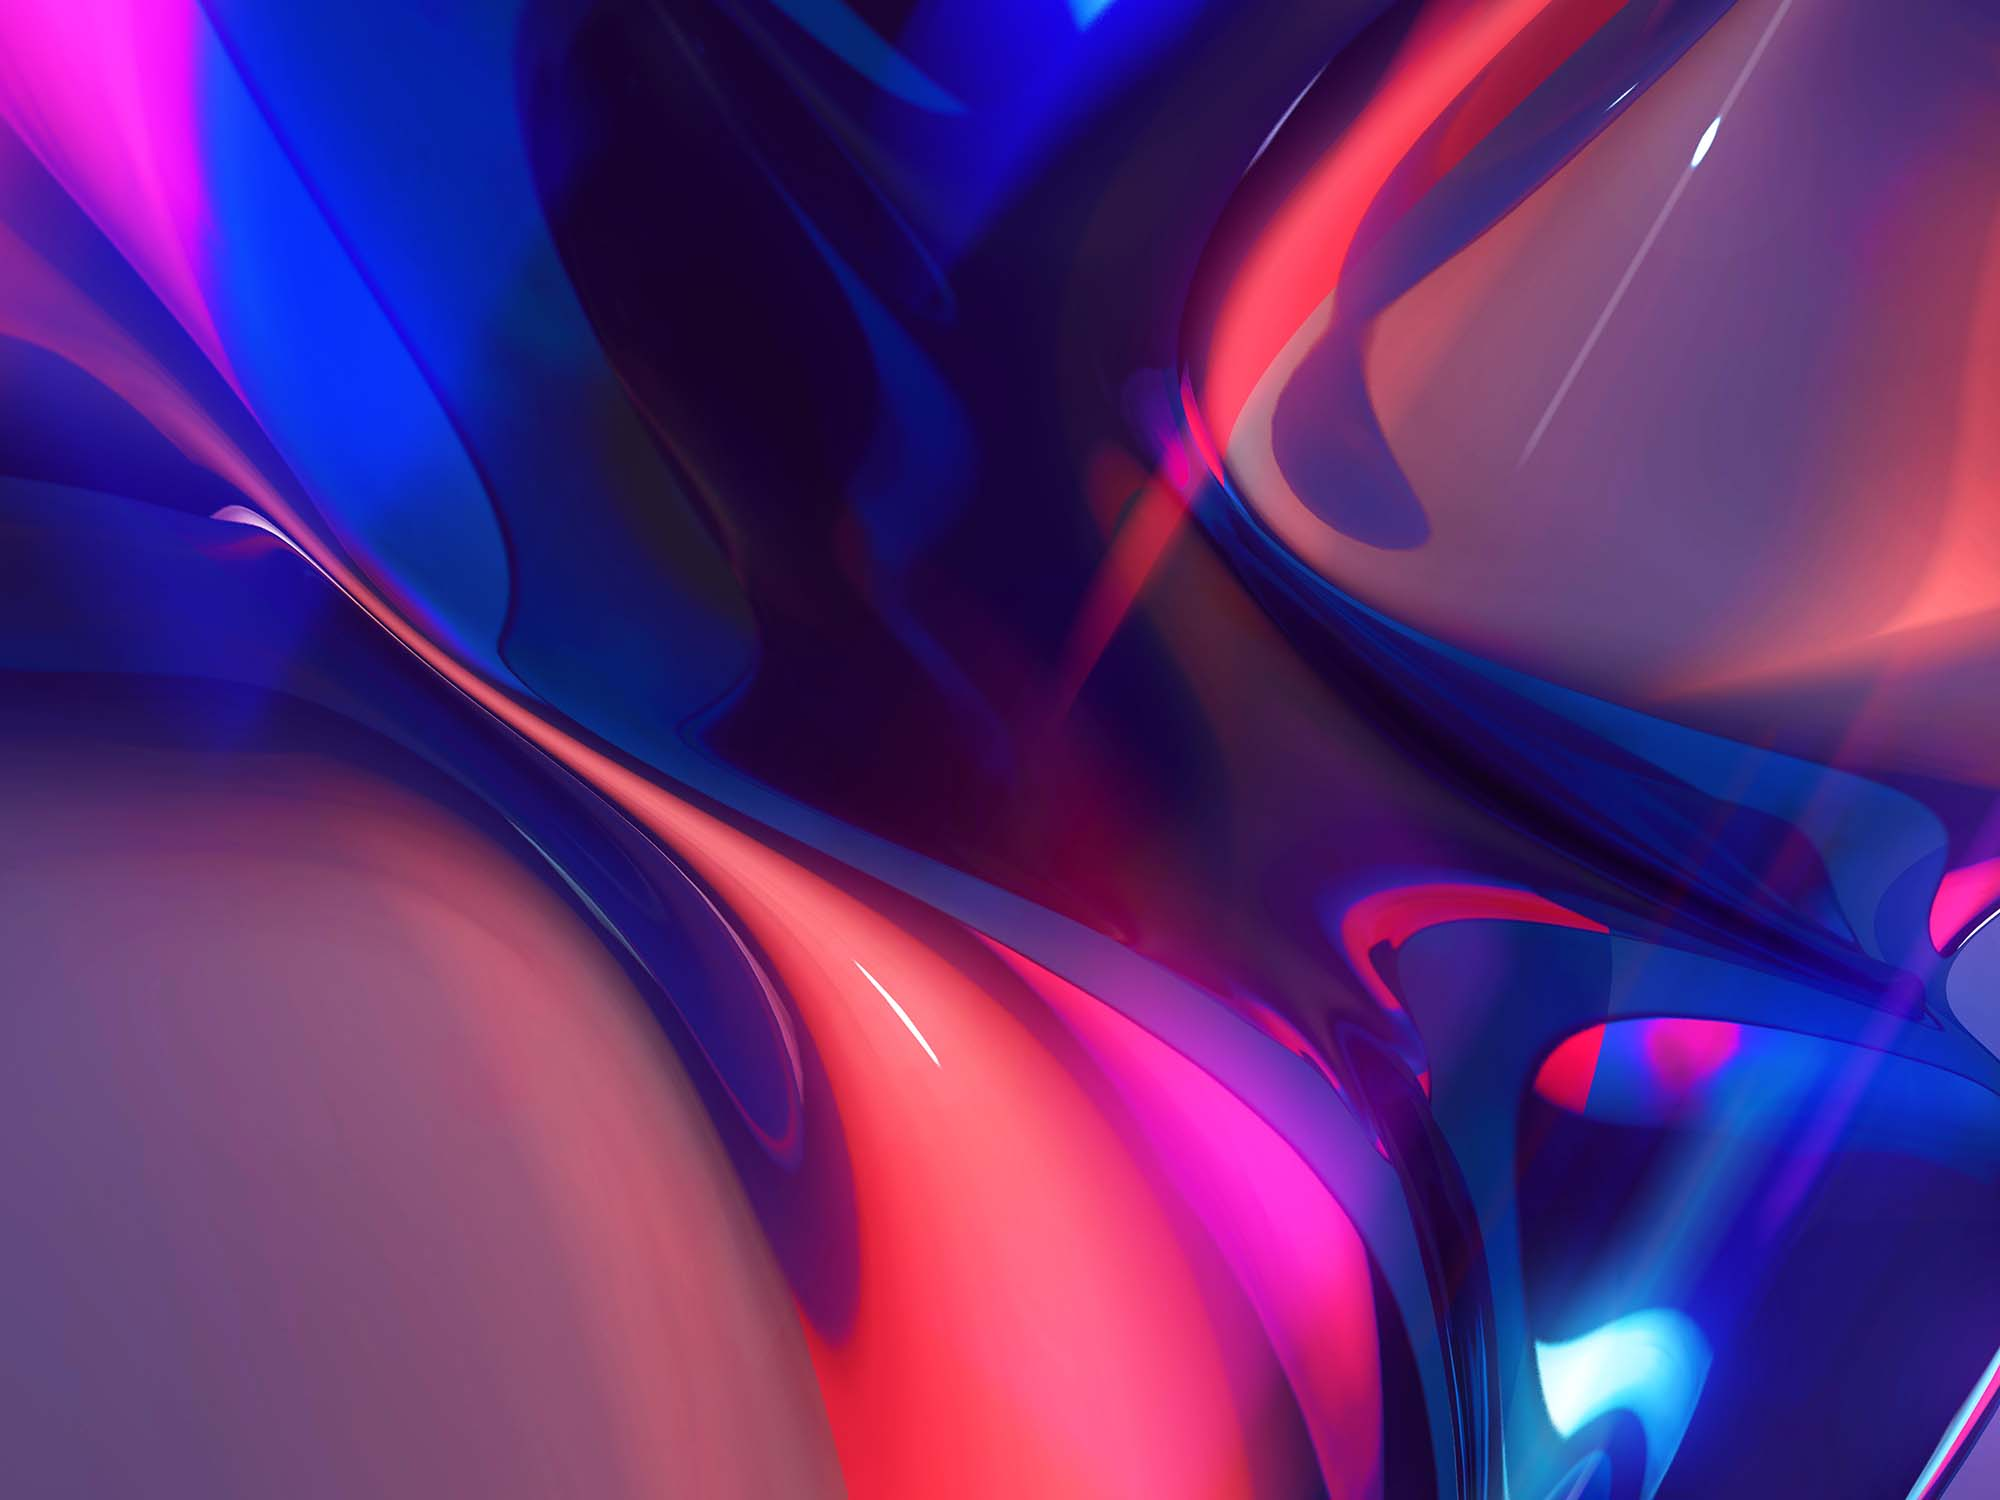 Colorful Sci-Fi Textures